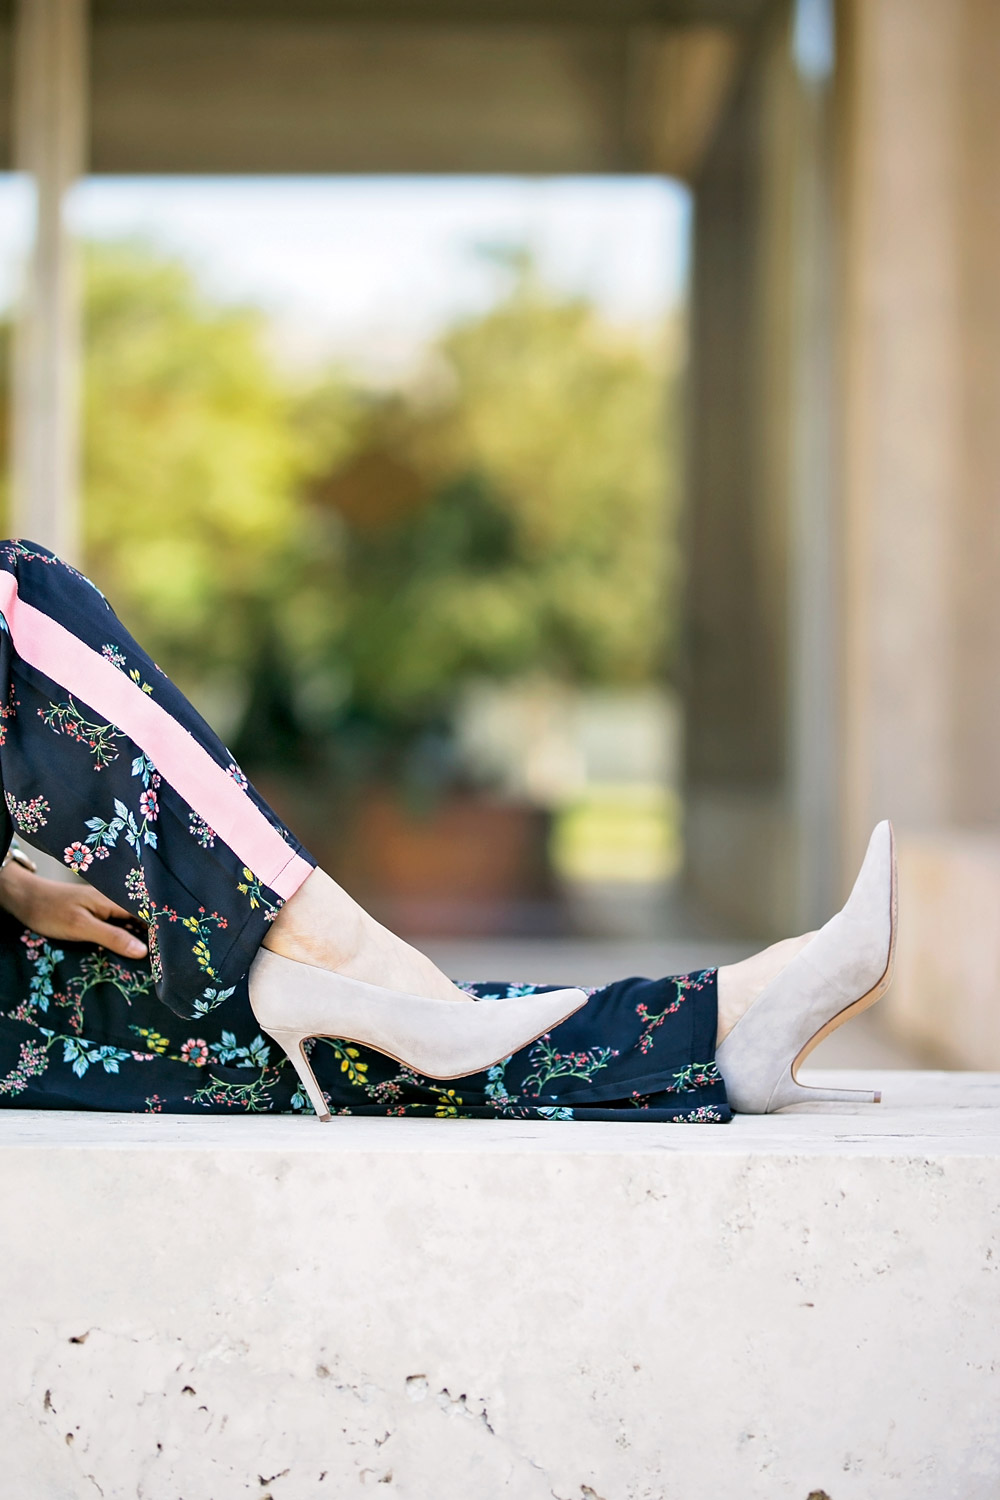 who what wear collection floral kimono pajama track pants dolce vita ankia suede heels